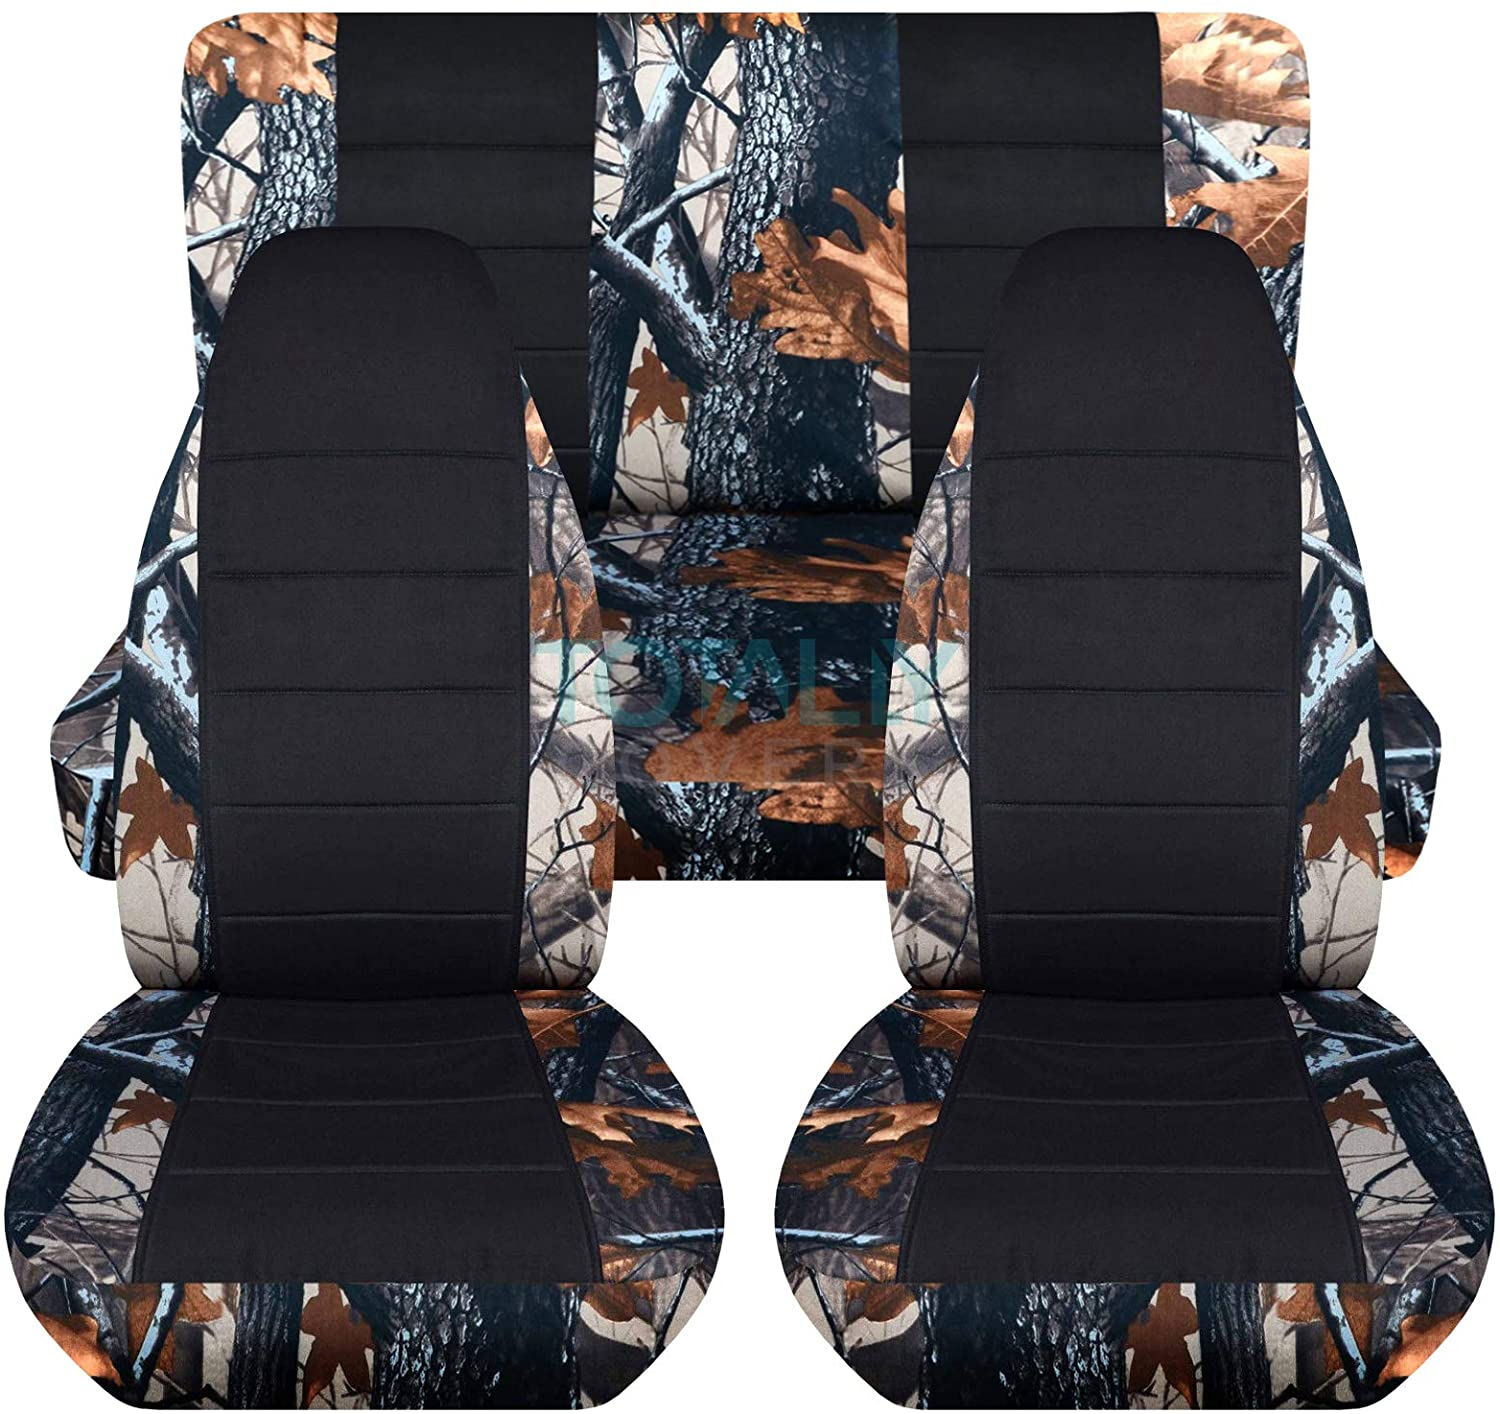 Totally Covers Camouflage & Black Car Seat Covers: Gray Tree Camo - Semi-Custom Fit - Full Set - Will Make Fit Any Car/Truck/Van/RV/SUV (22 Prints)